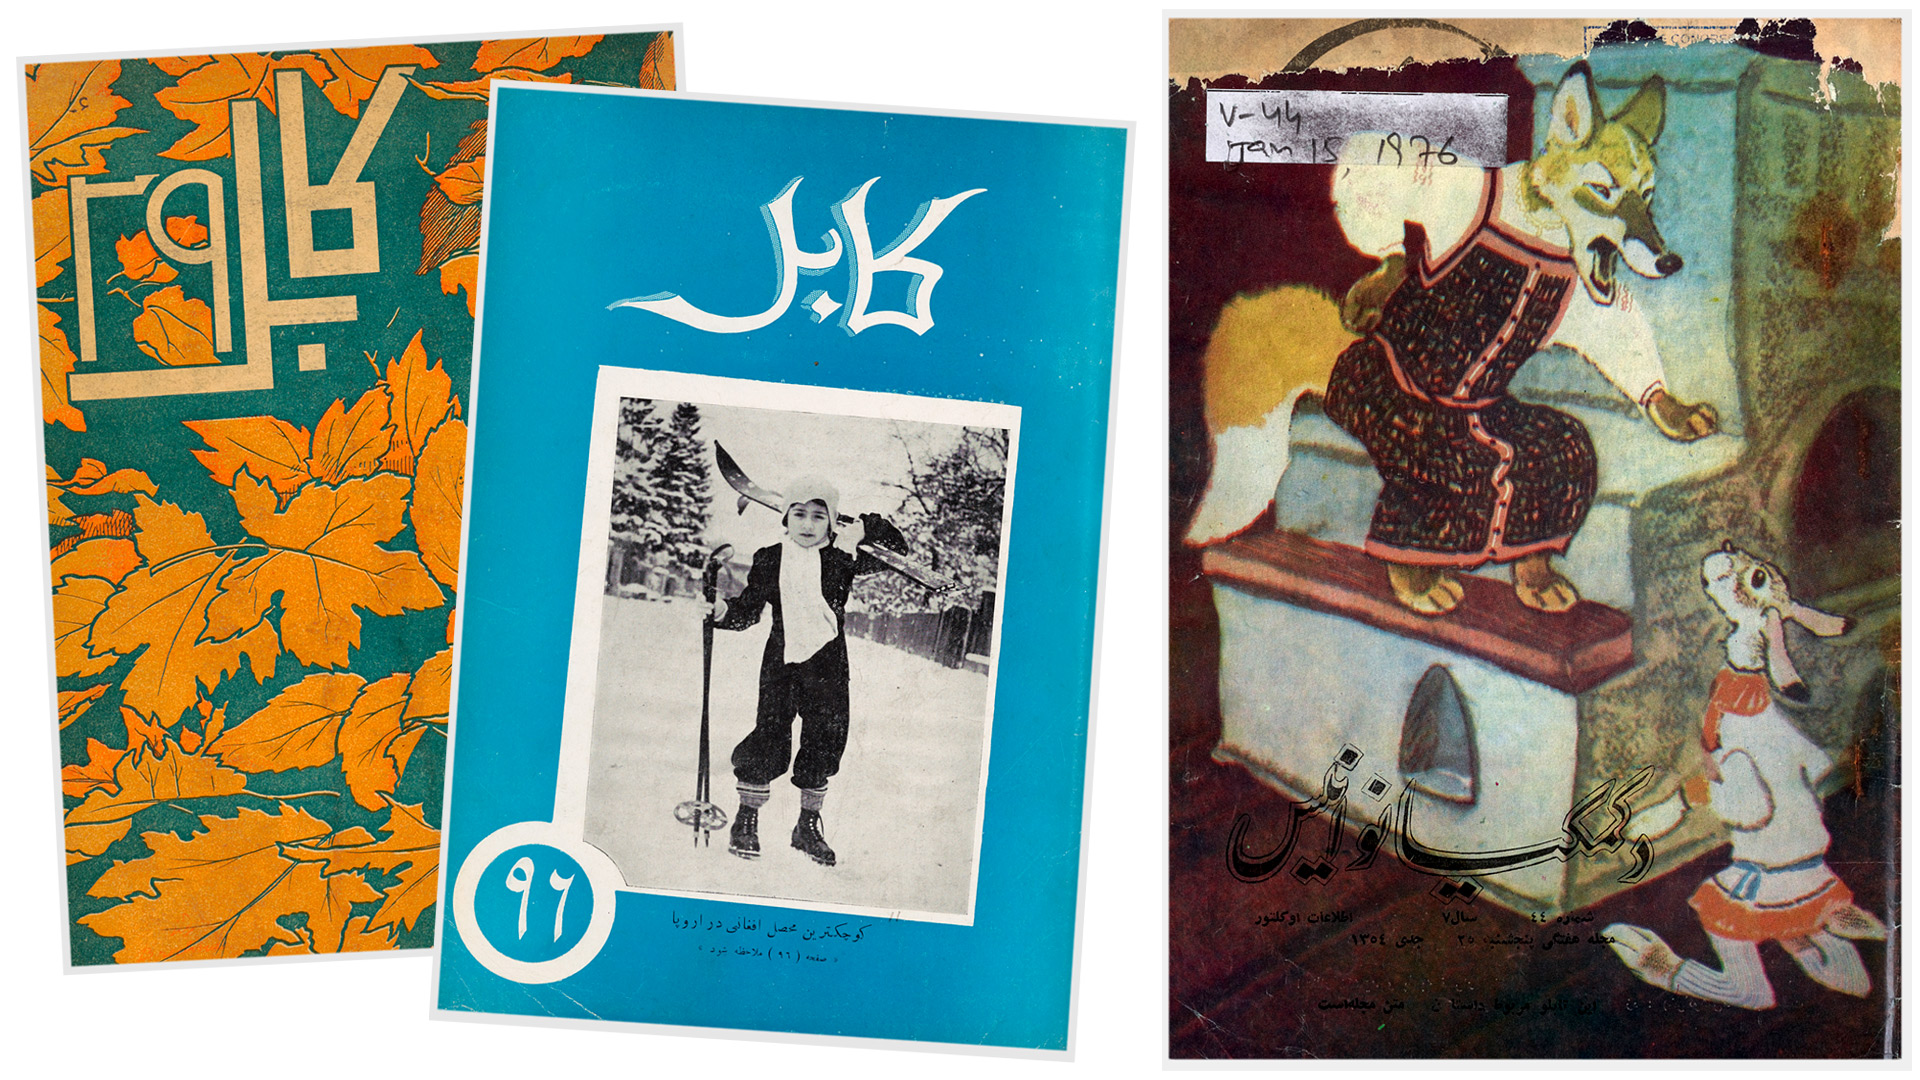 Front covers of Kabul and Children's Companion (Kamkayano Anis) magazines